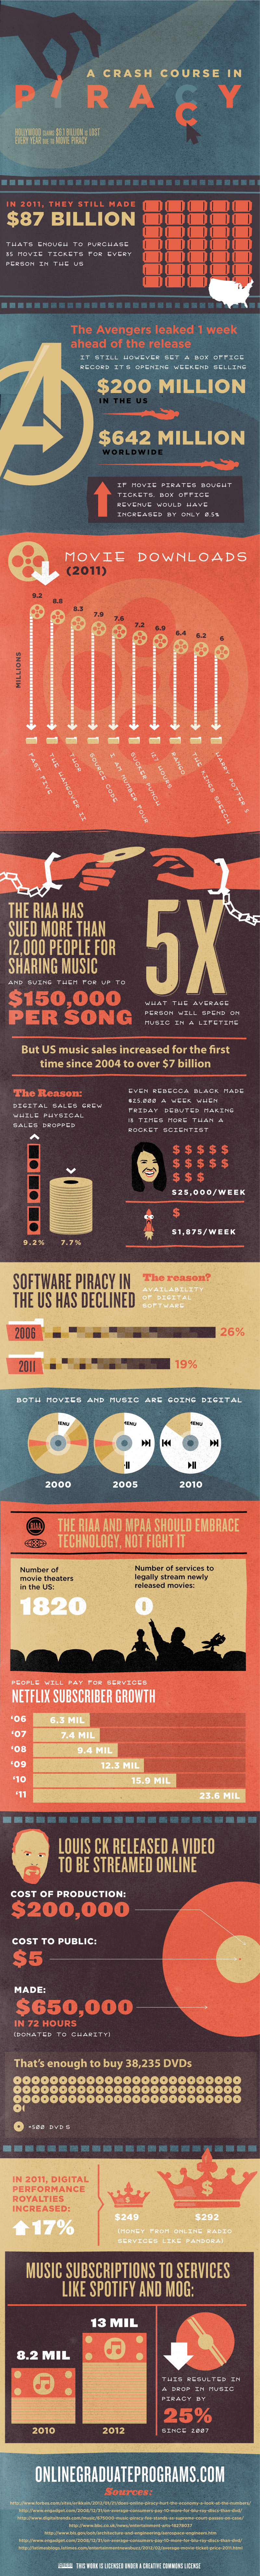 music movies programs piracy Interesting Infographic on Piracy